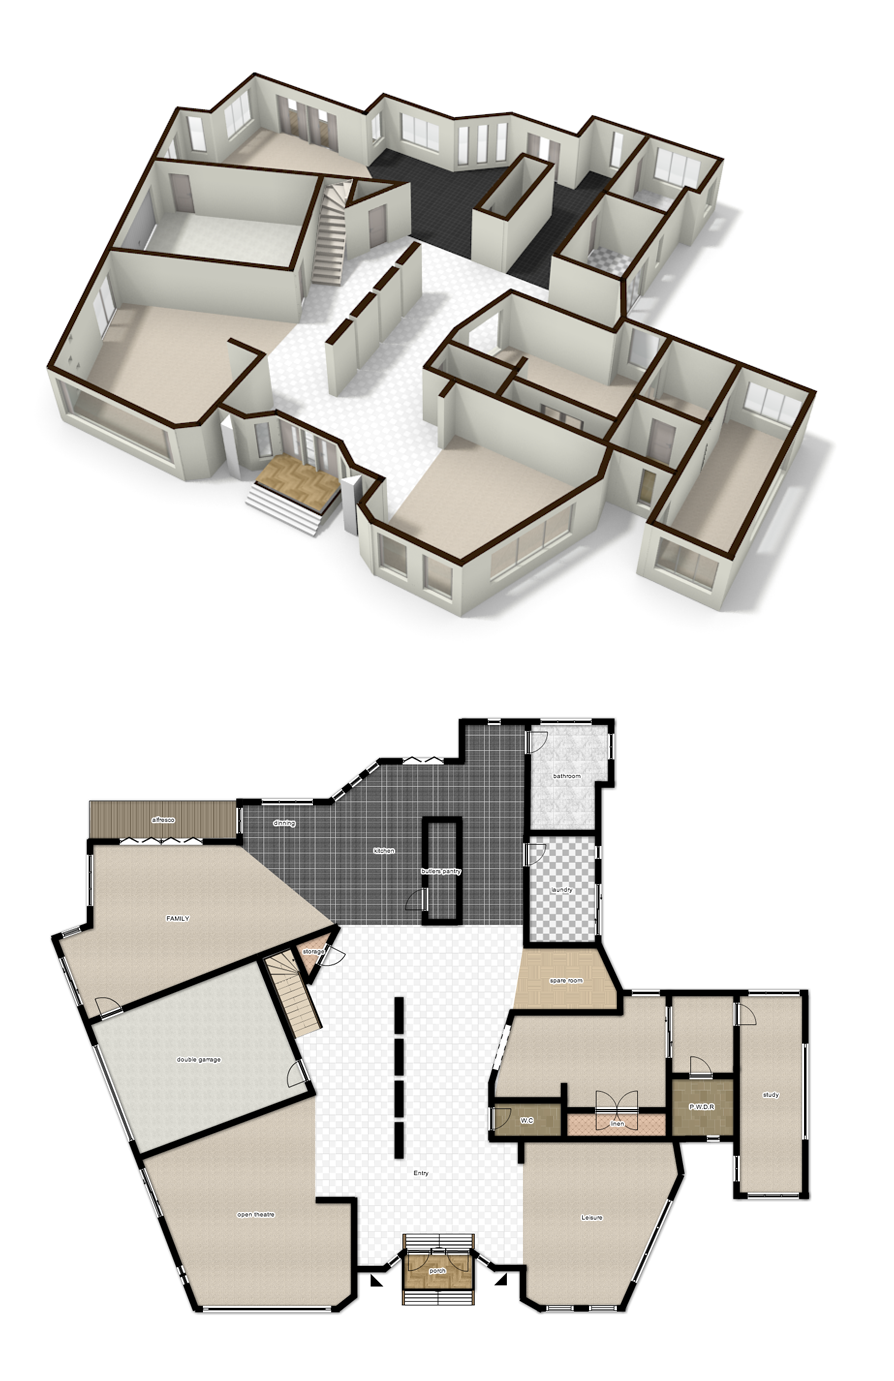 Big Home Design Made In Floorplanner By Jono Home Planner Floor Plans House Plans